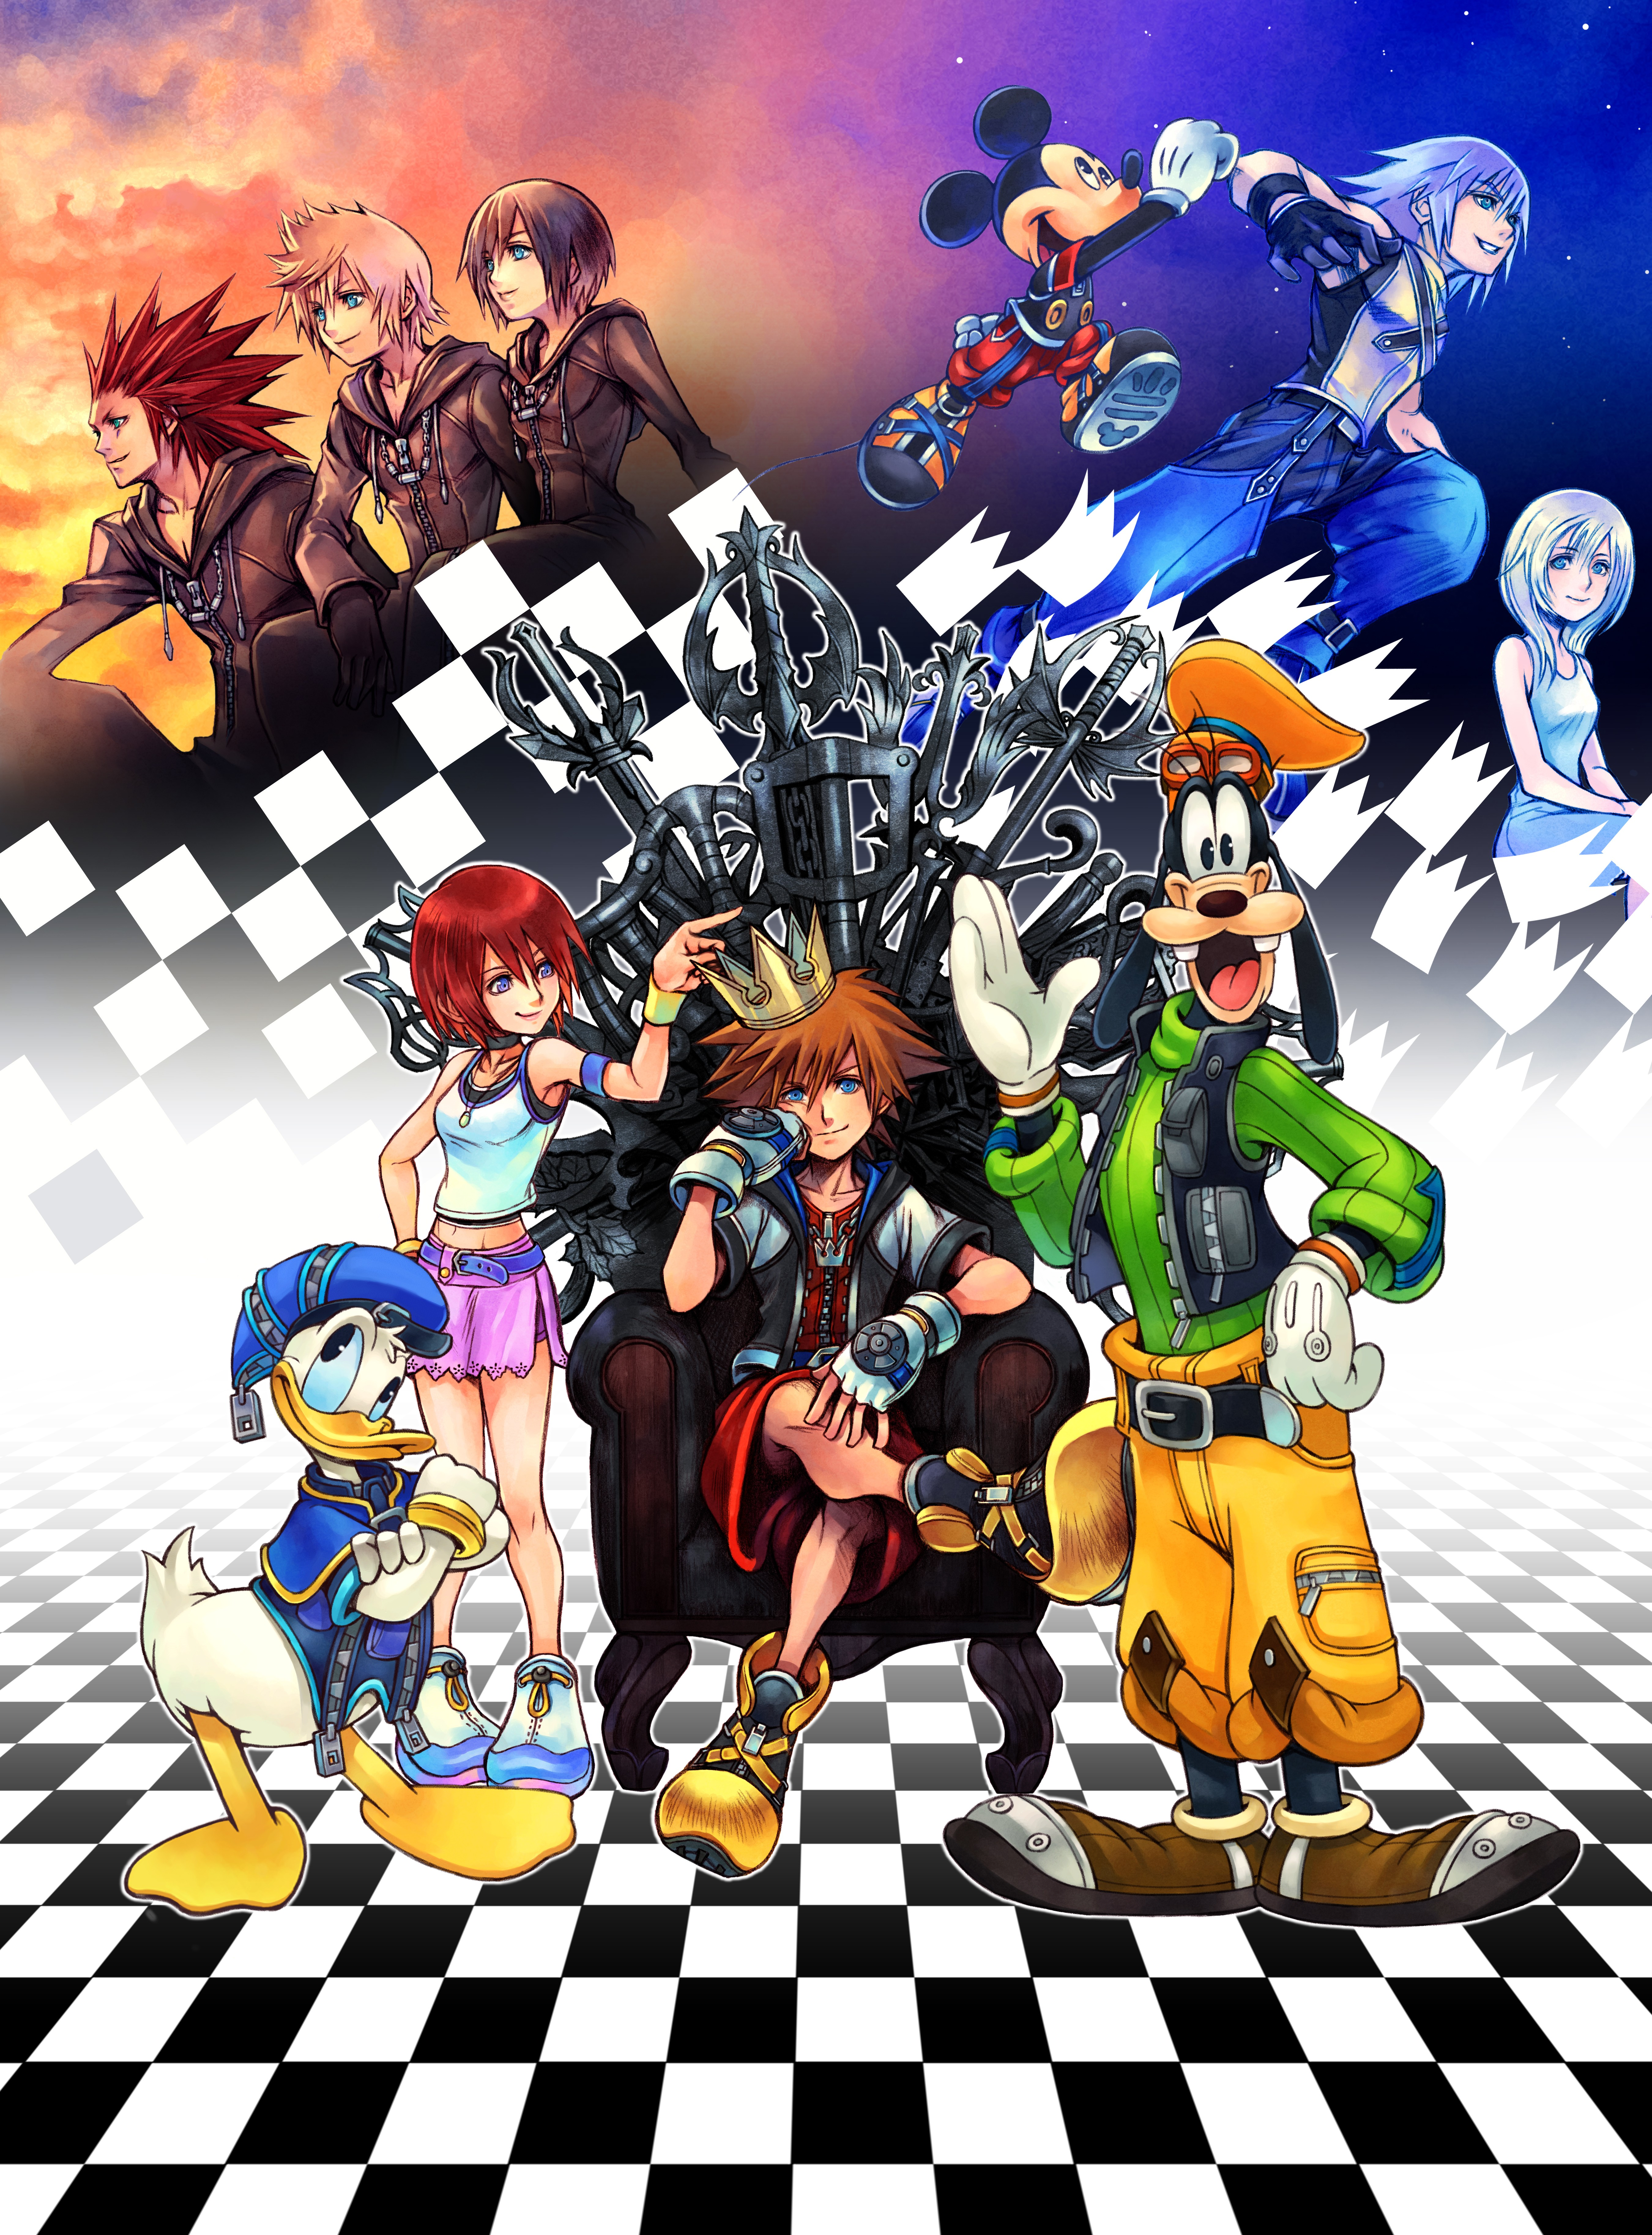 Heres the iPhone wallpaper without the Kingdom Hearts 15 logo at the 5400x7304